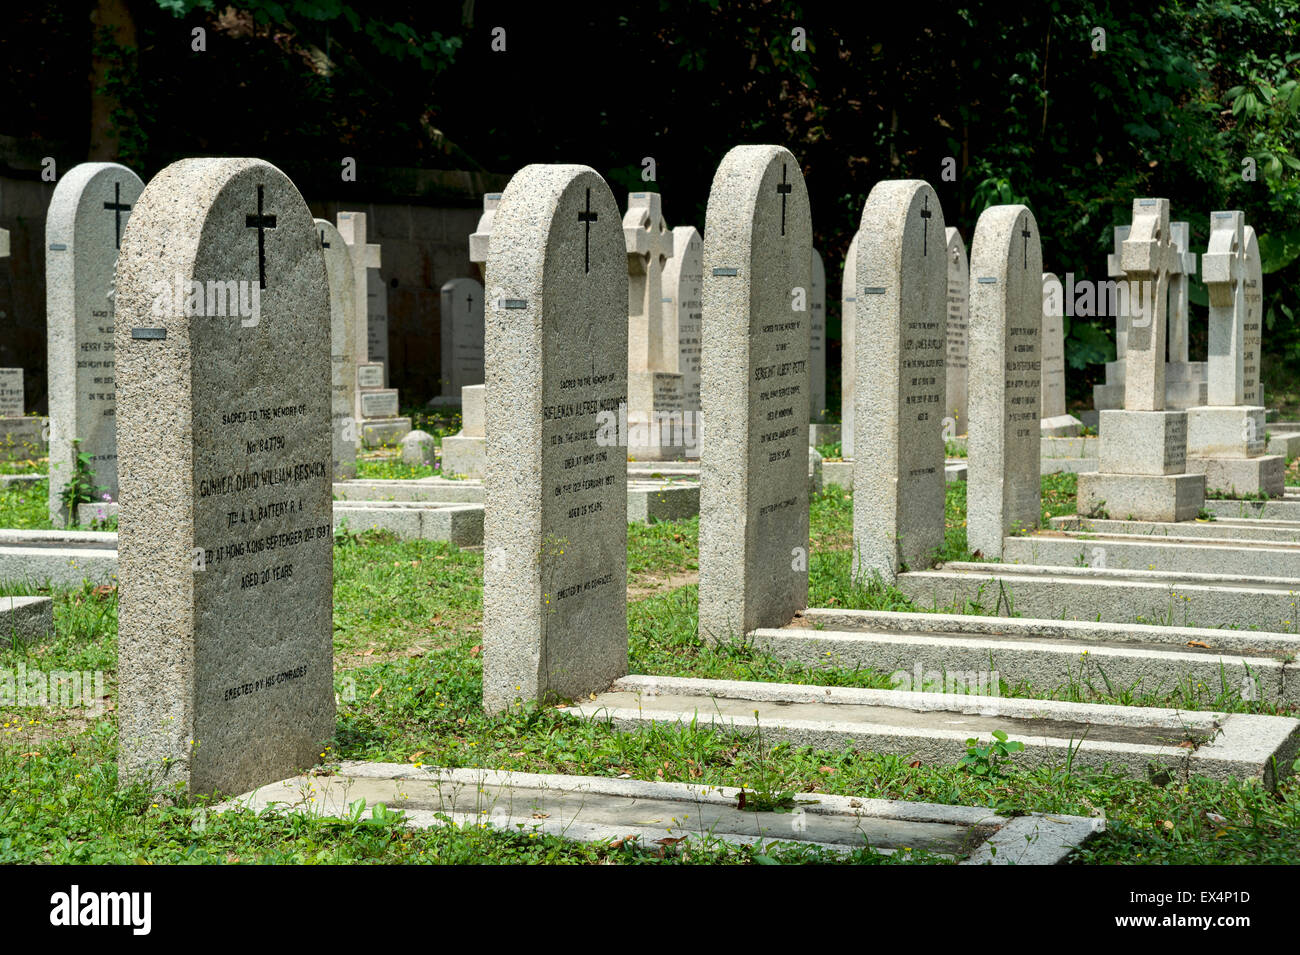 Soldier's headstones at  Hong Kong Cemetery Stock Photo